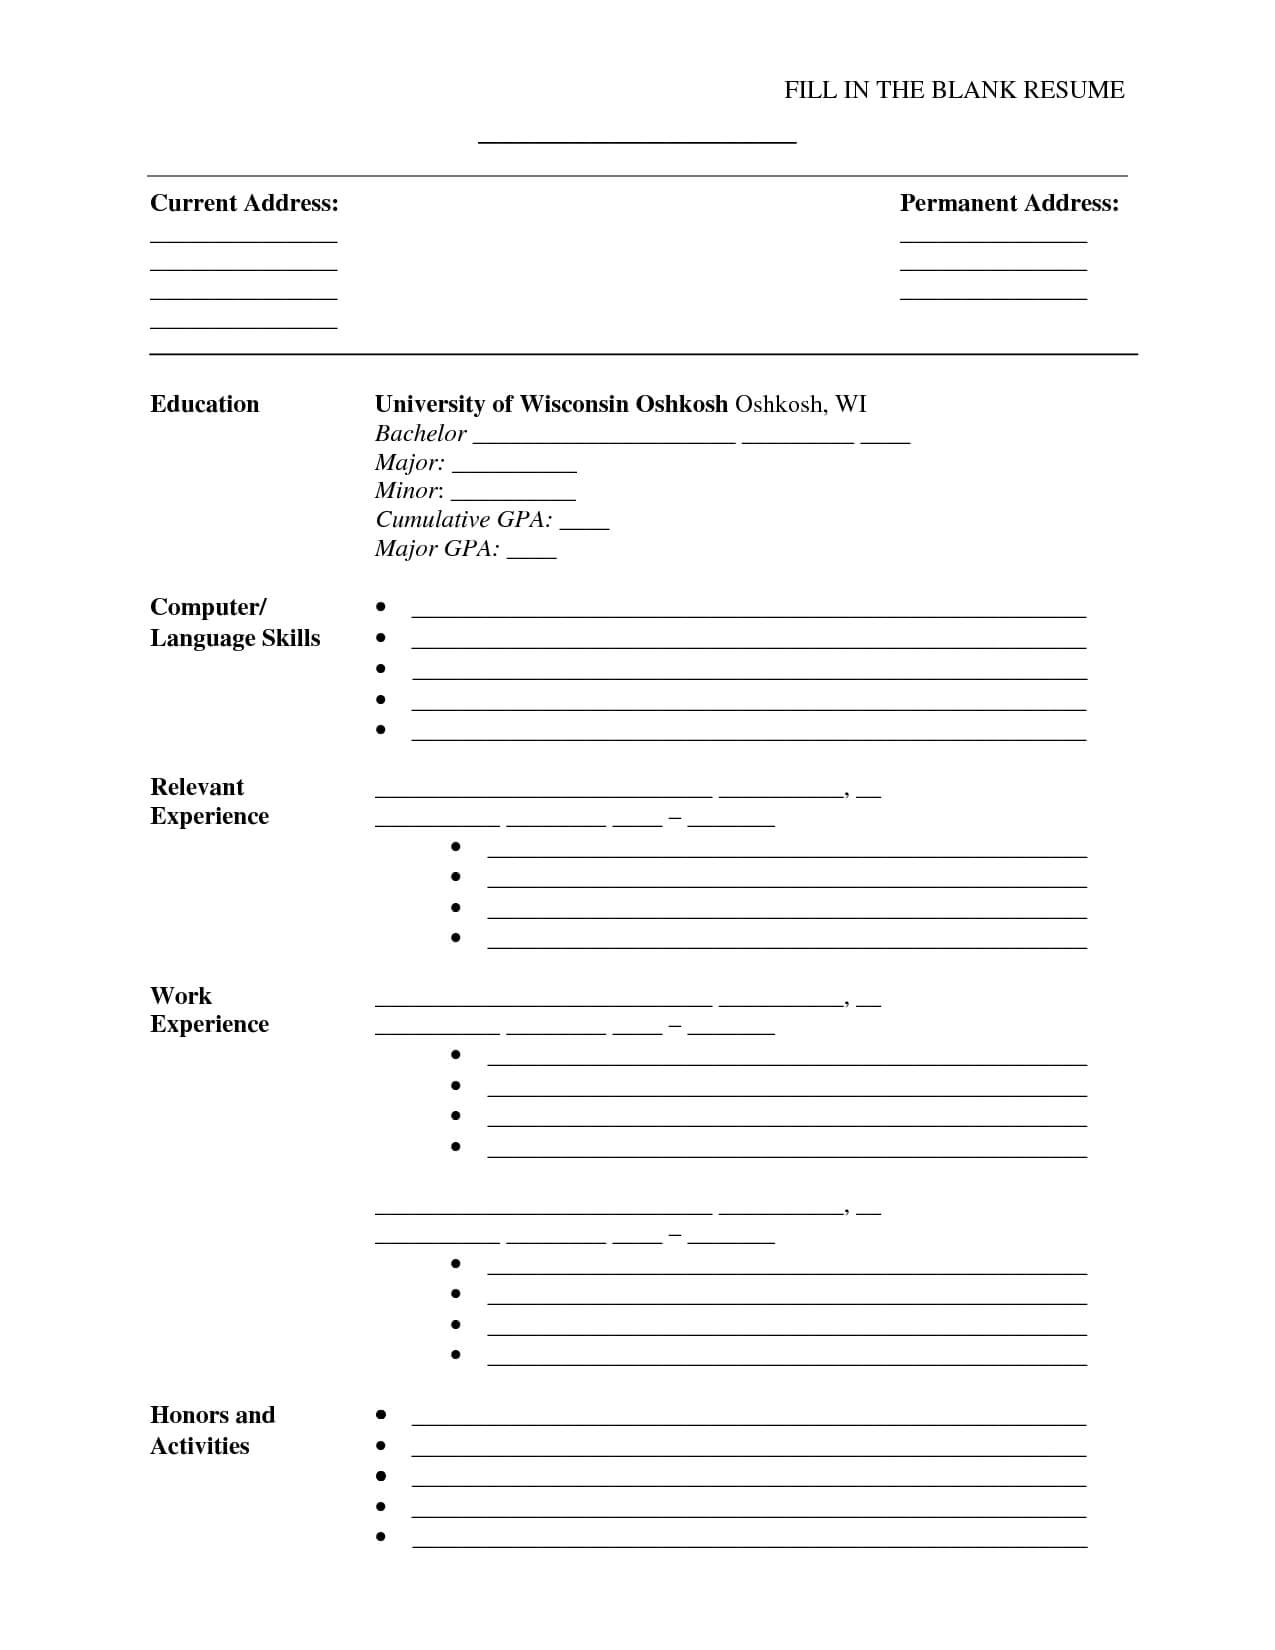 A Cv Template To Fill In | Free Printable Resume, Free For Free Bio Template Fill In Blank